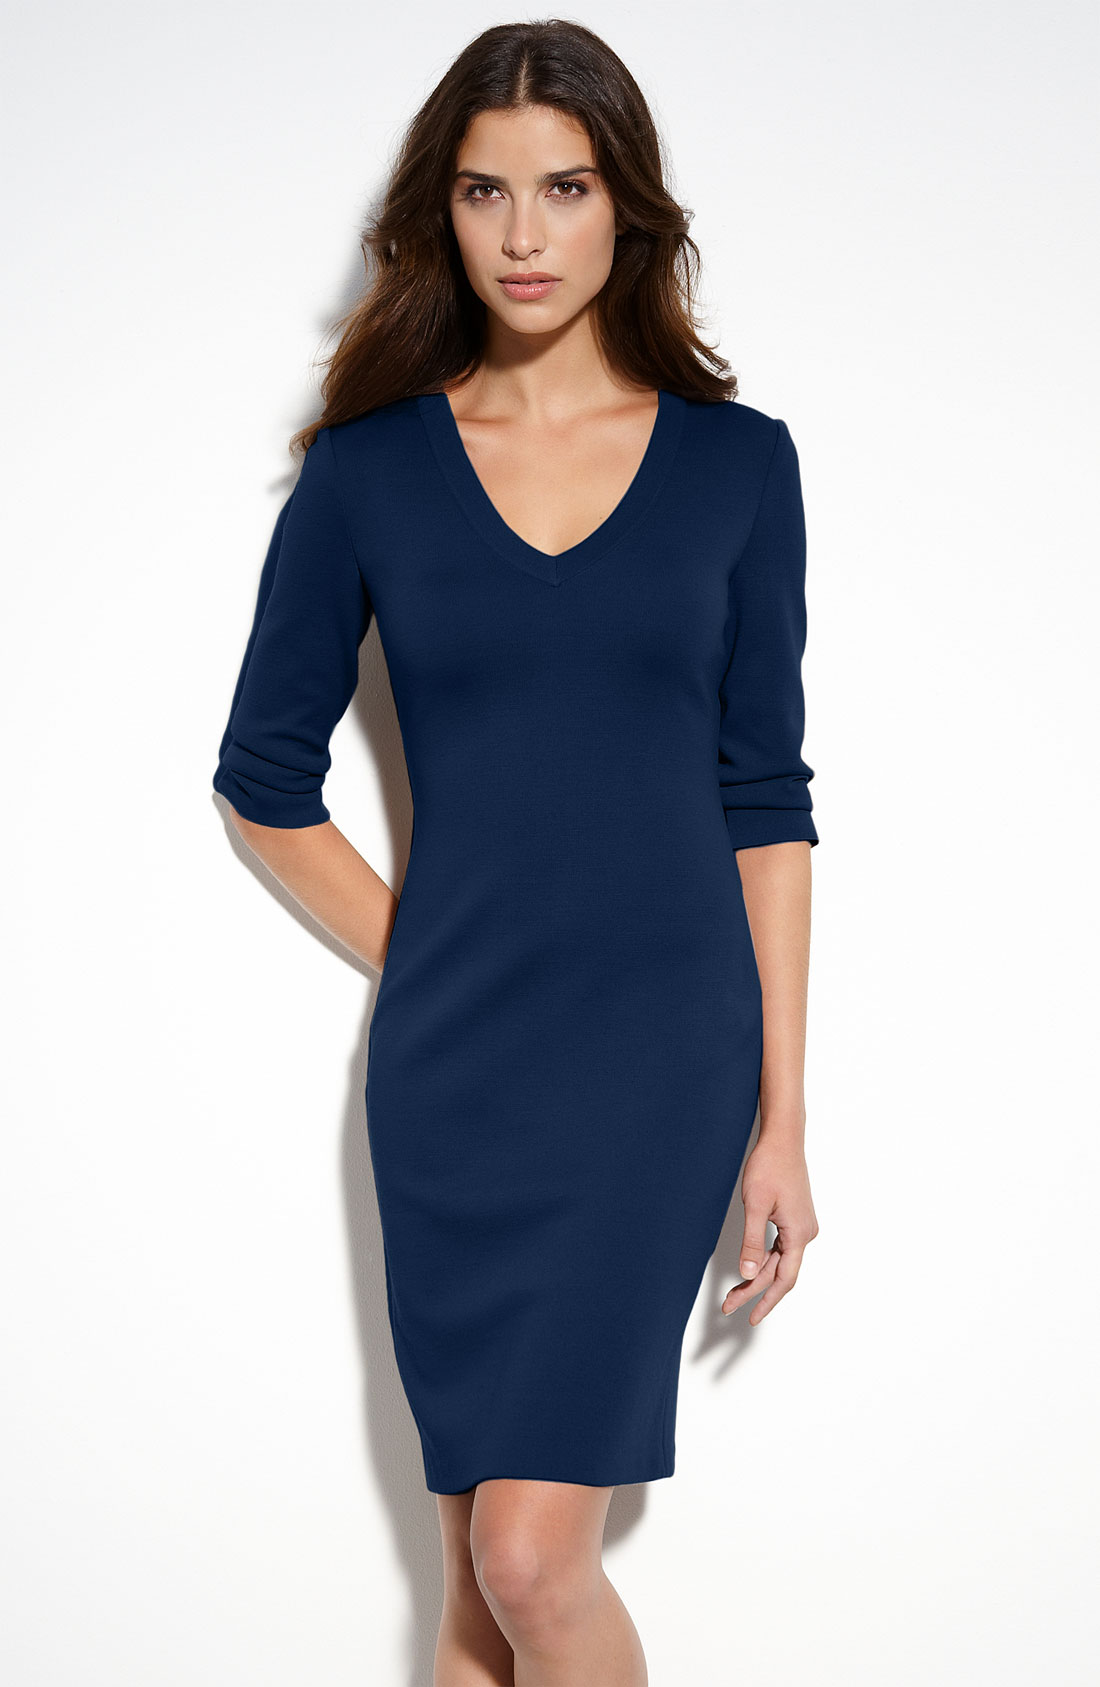 Nordstrom Bodycon Dresses